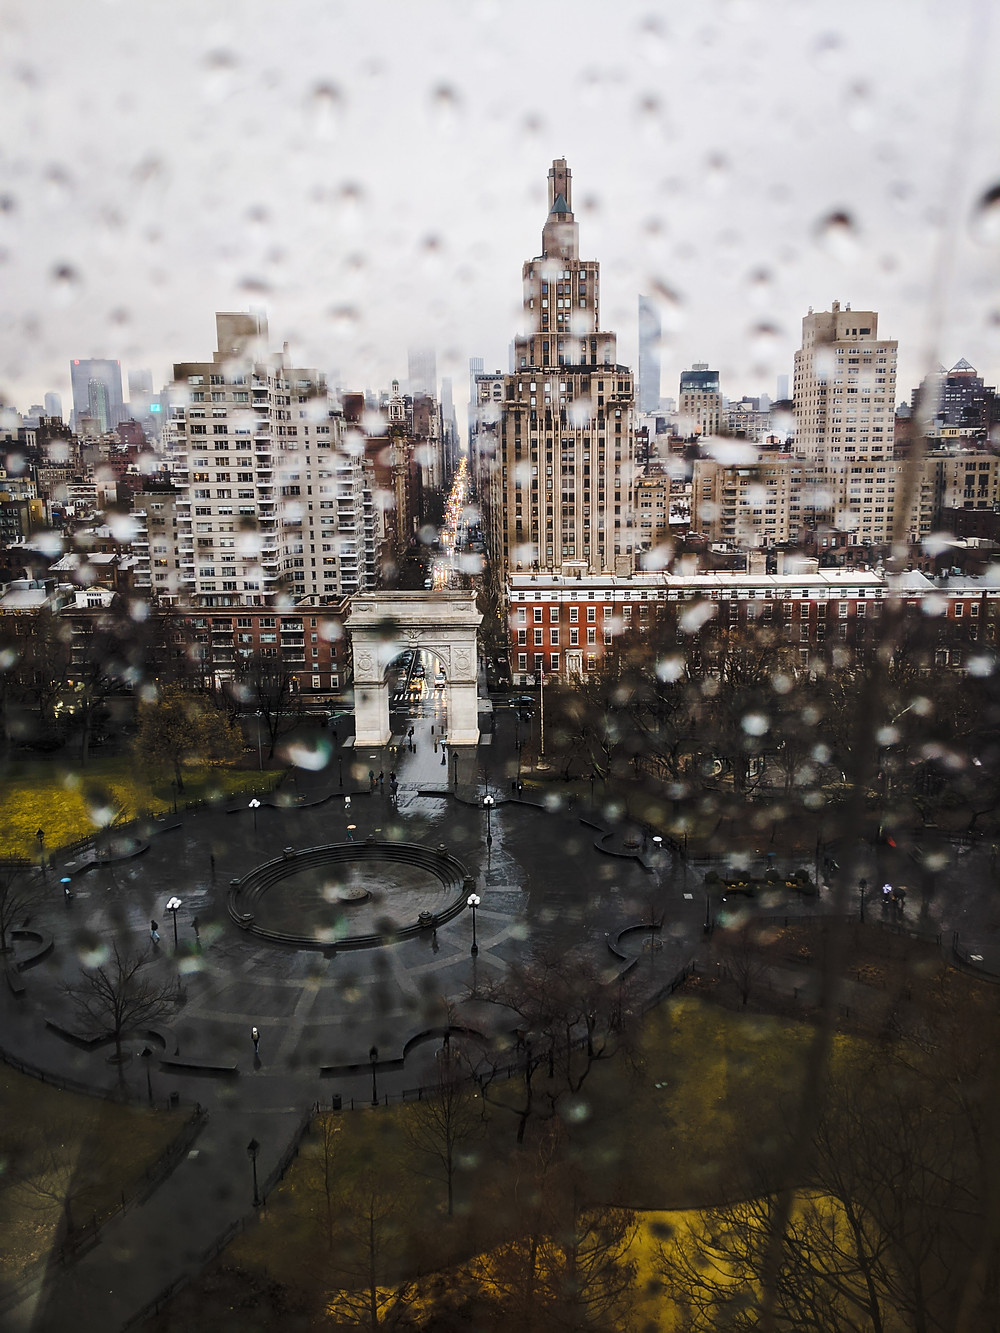 Blurred water droplets through a window overlooking Washington square park, take from 10th floor of New York University's Kimmel Center